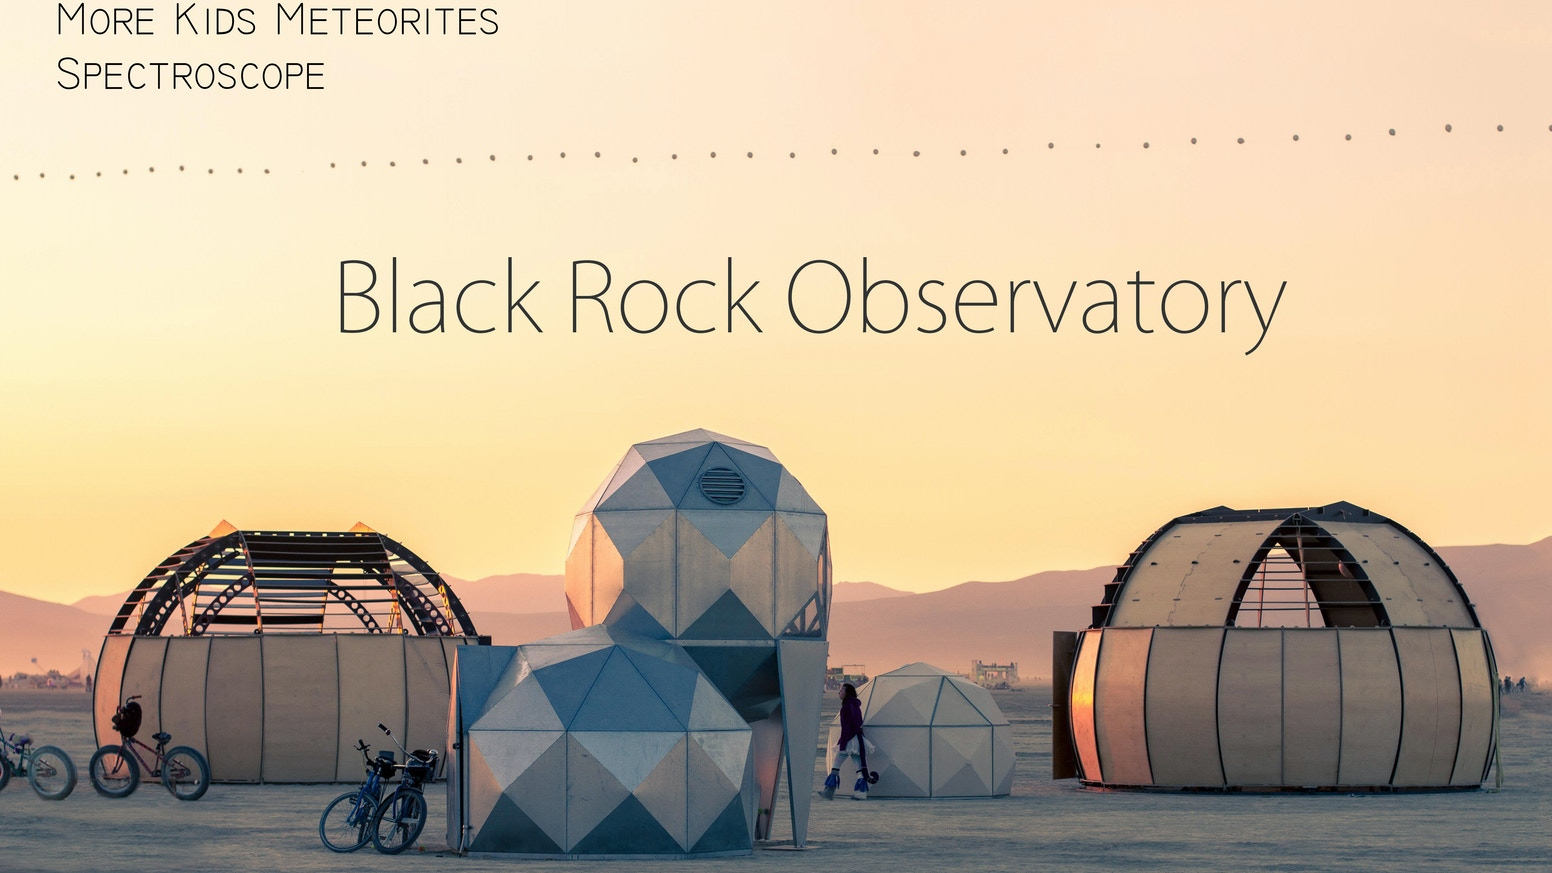 A mobile astronomical observatory with a giant, hand-made telescope and meteorite samples for Burning Man 2015 and beyond.